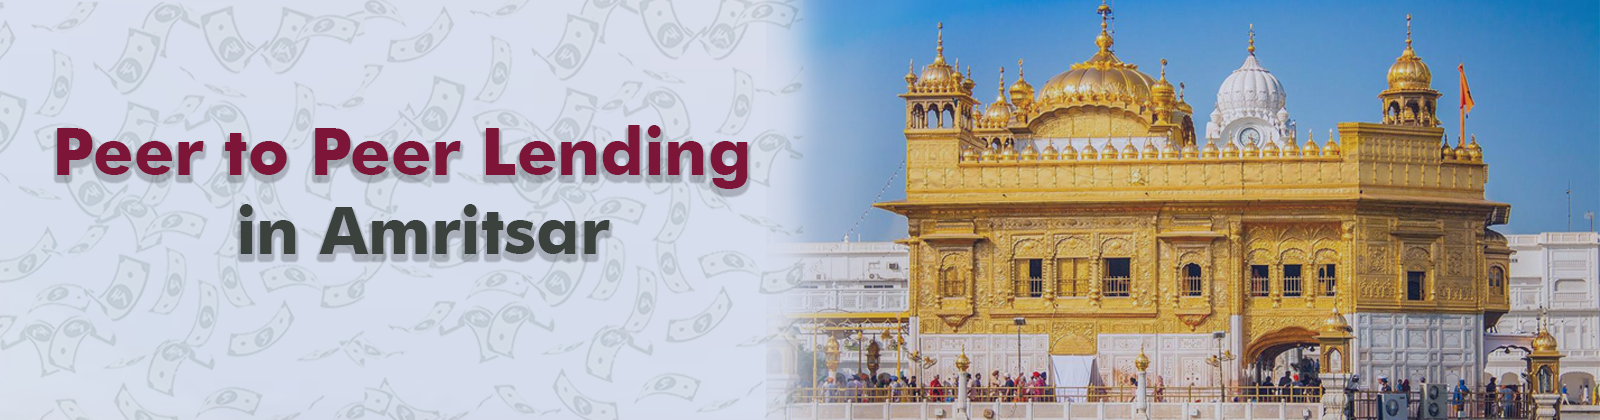 Peer to Peer Lending in Amritsar